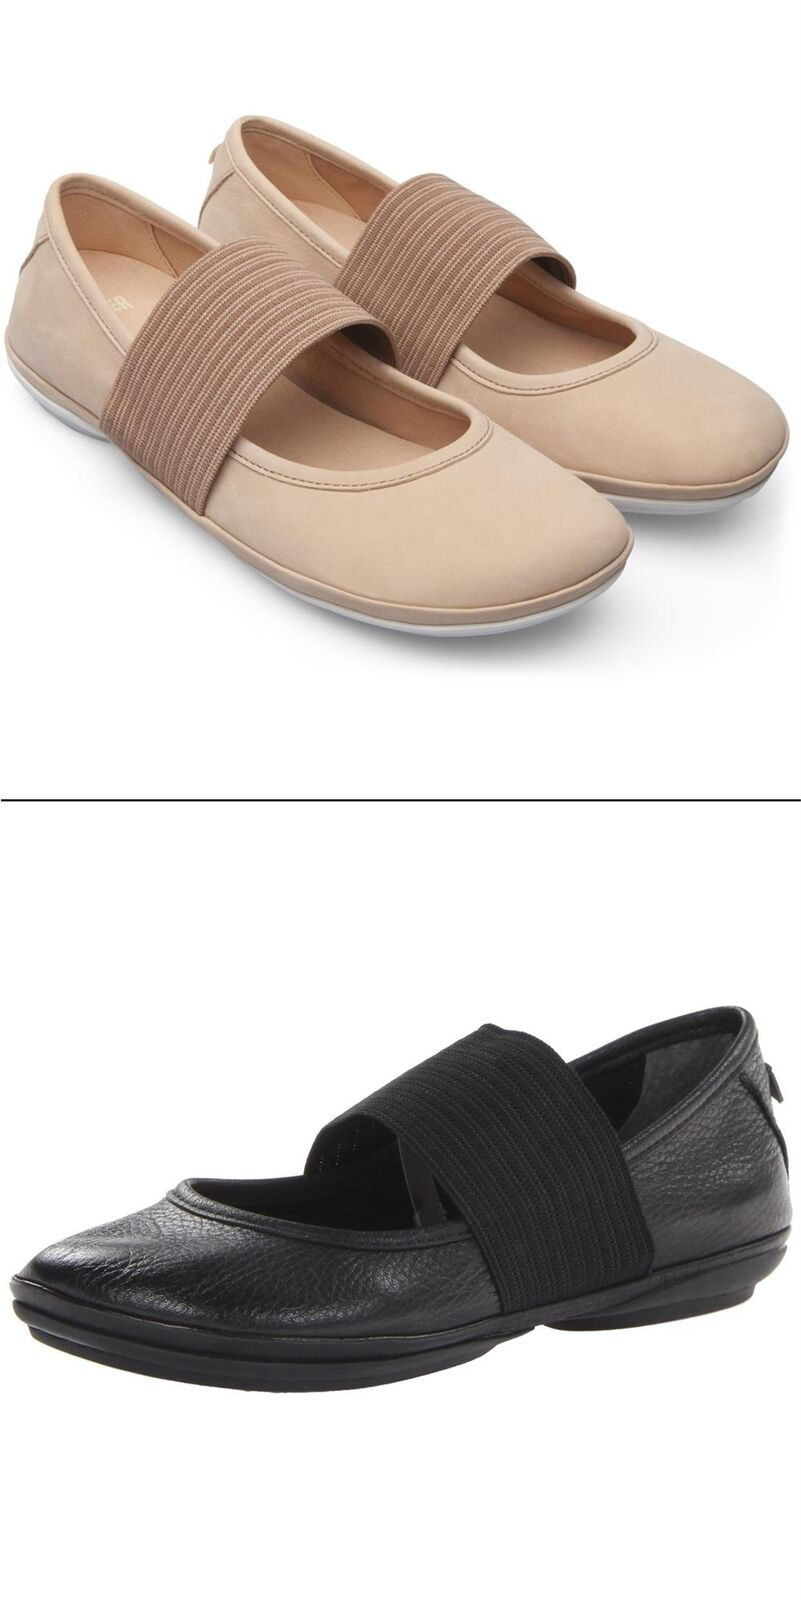 NEW Women's CAMPER Right Nina Mary Jane Ballet Leather Flats Slip On Shoes 1